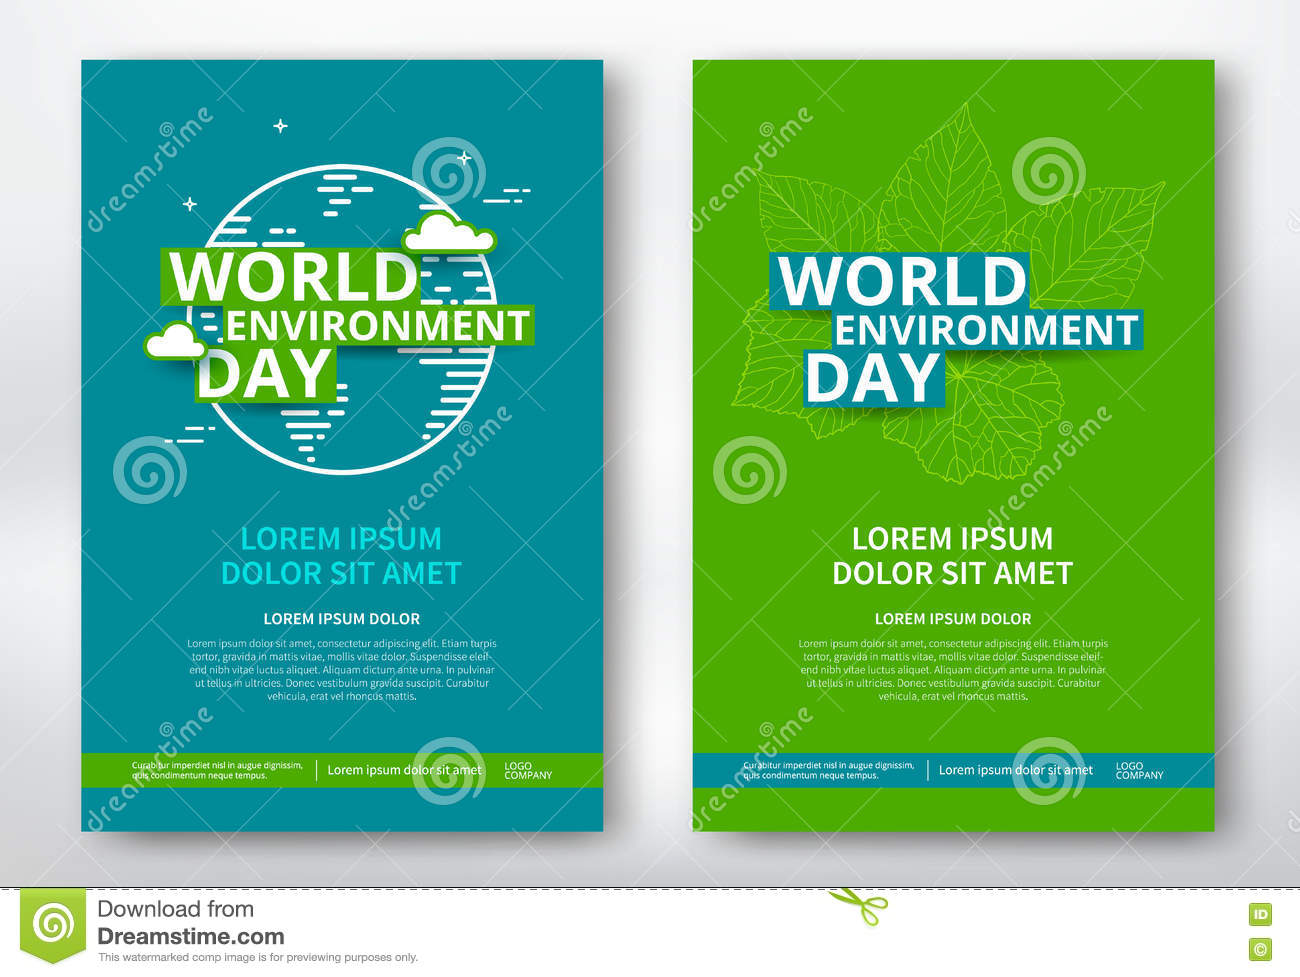 Poster design environment day - World Environment Day